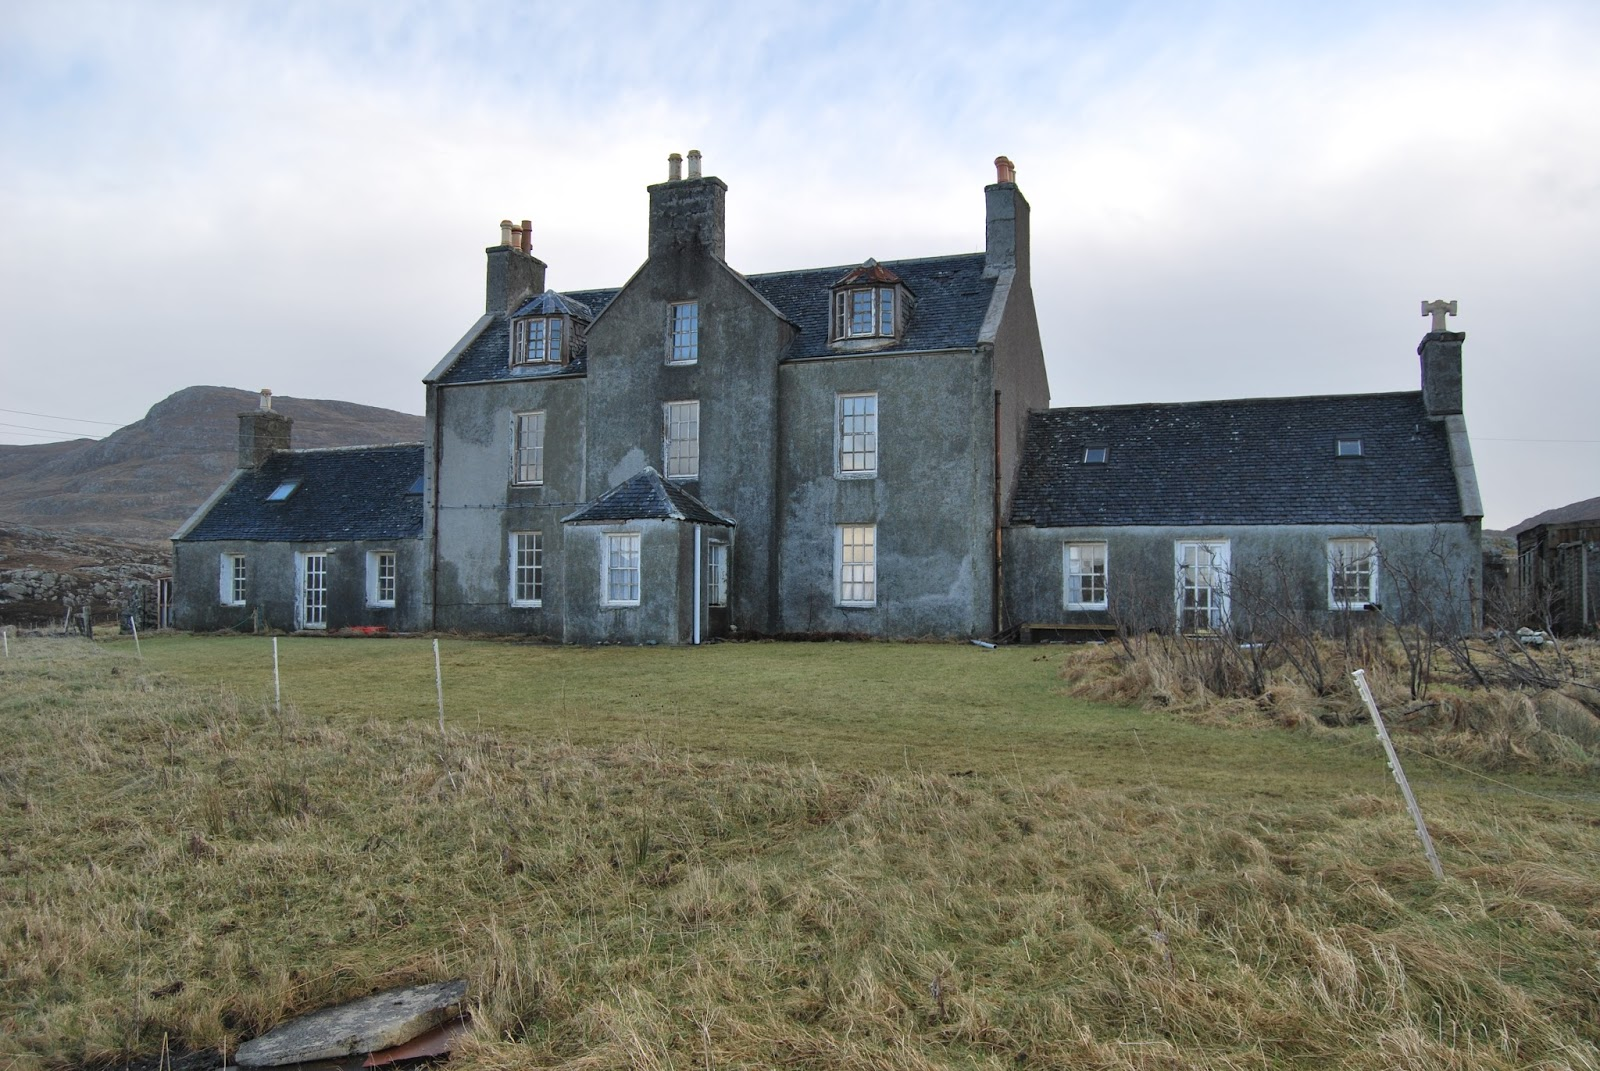 scotland together sale potentially basically a wreck cottage in being farmhouse for cottages week sold on manor market the cowshed through s all or old derelict barns off and carmarth lots bjp it of